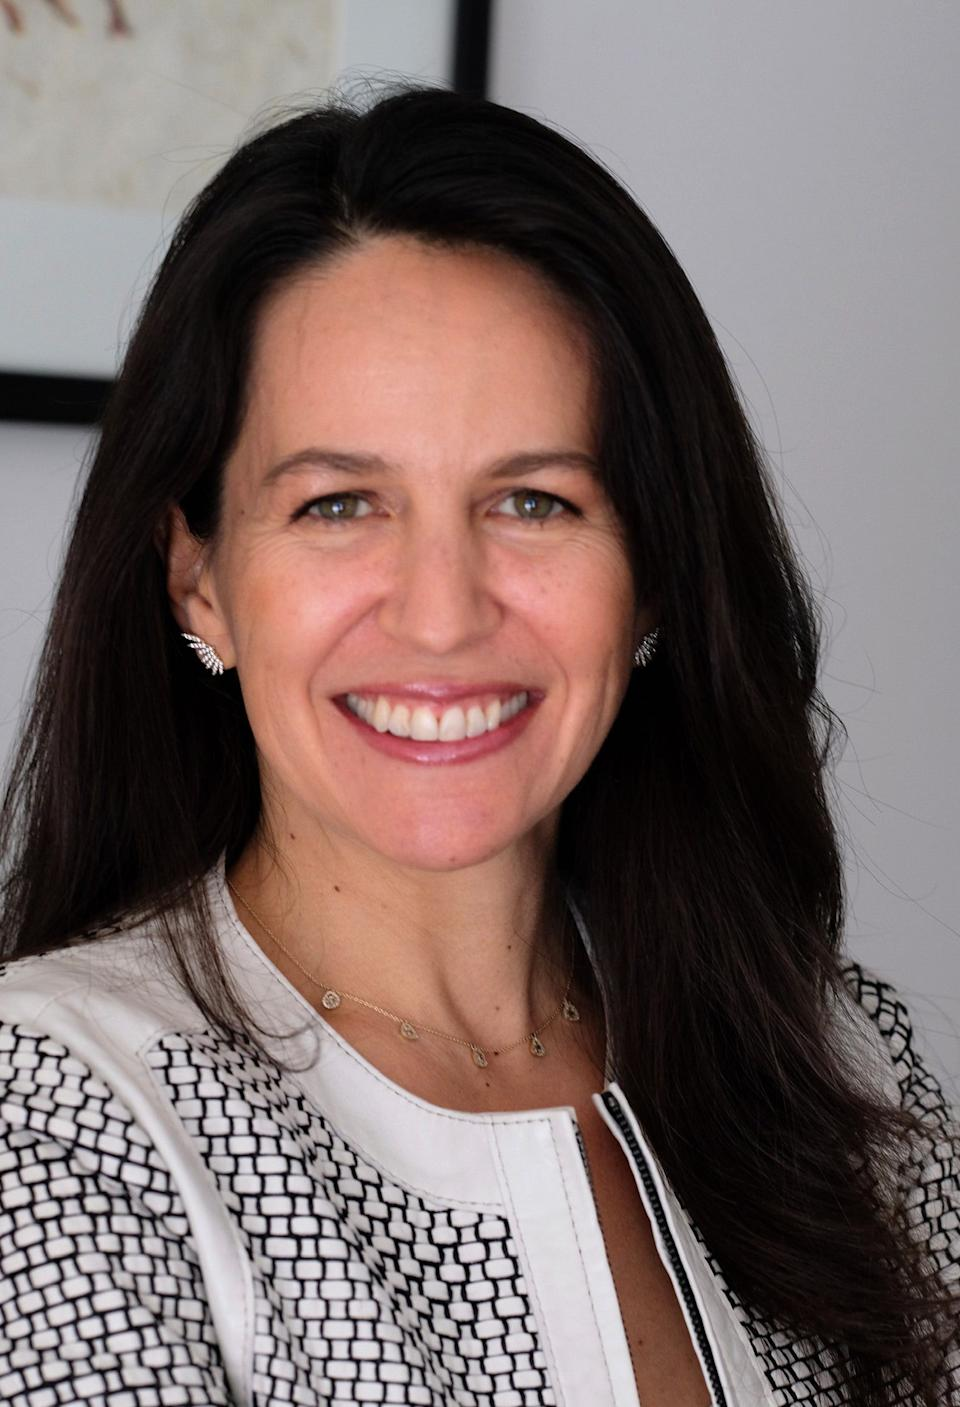 Marcela Escobari, a senior fellow at Brookings Institution, a public policy research organization based in Washington, D.C.